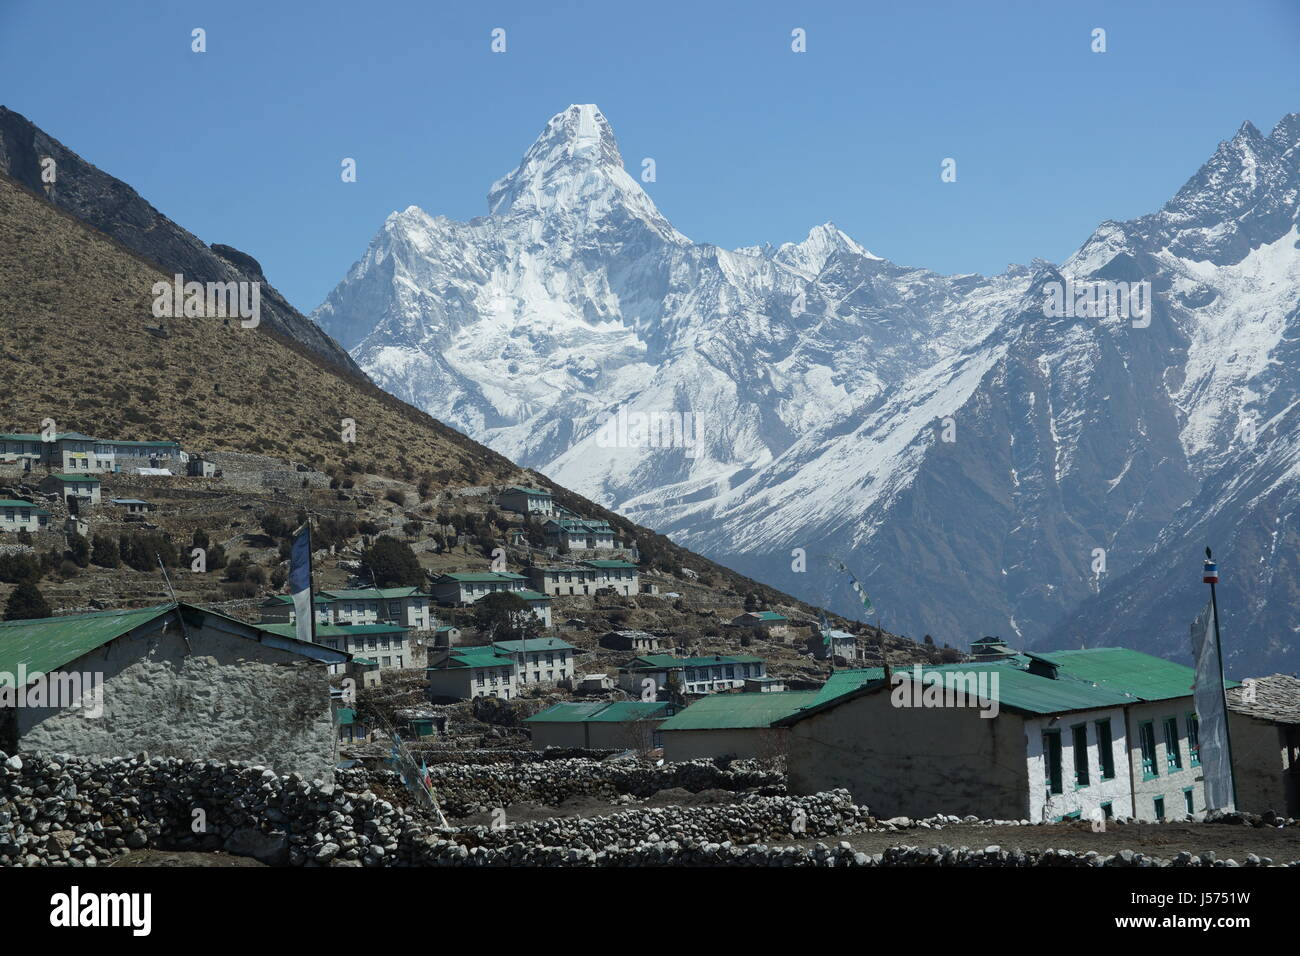 The village of Khumjung with Ama Dablam in the background - Stock Image